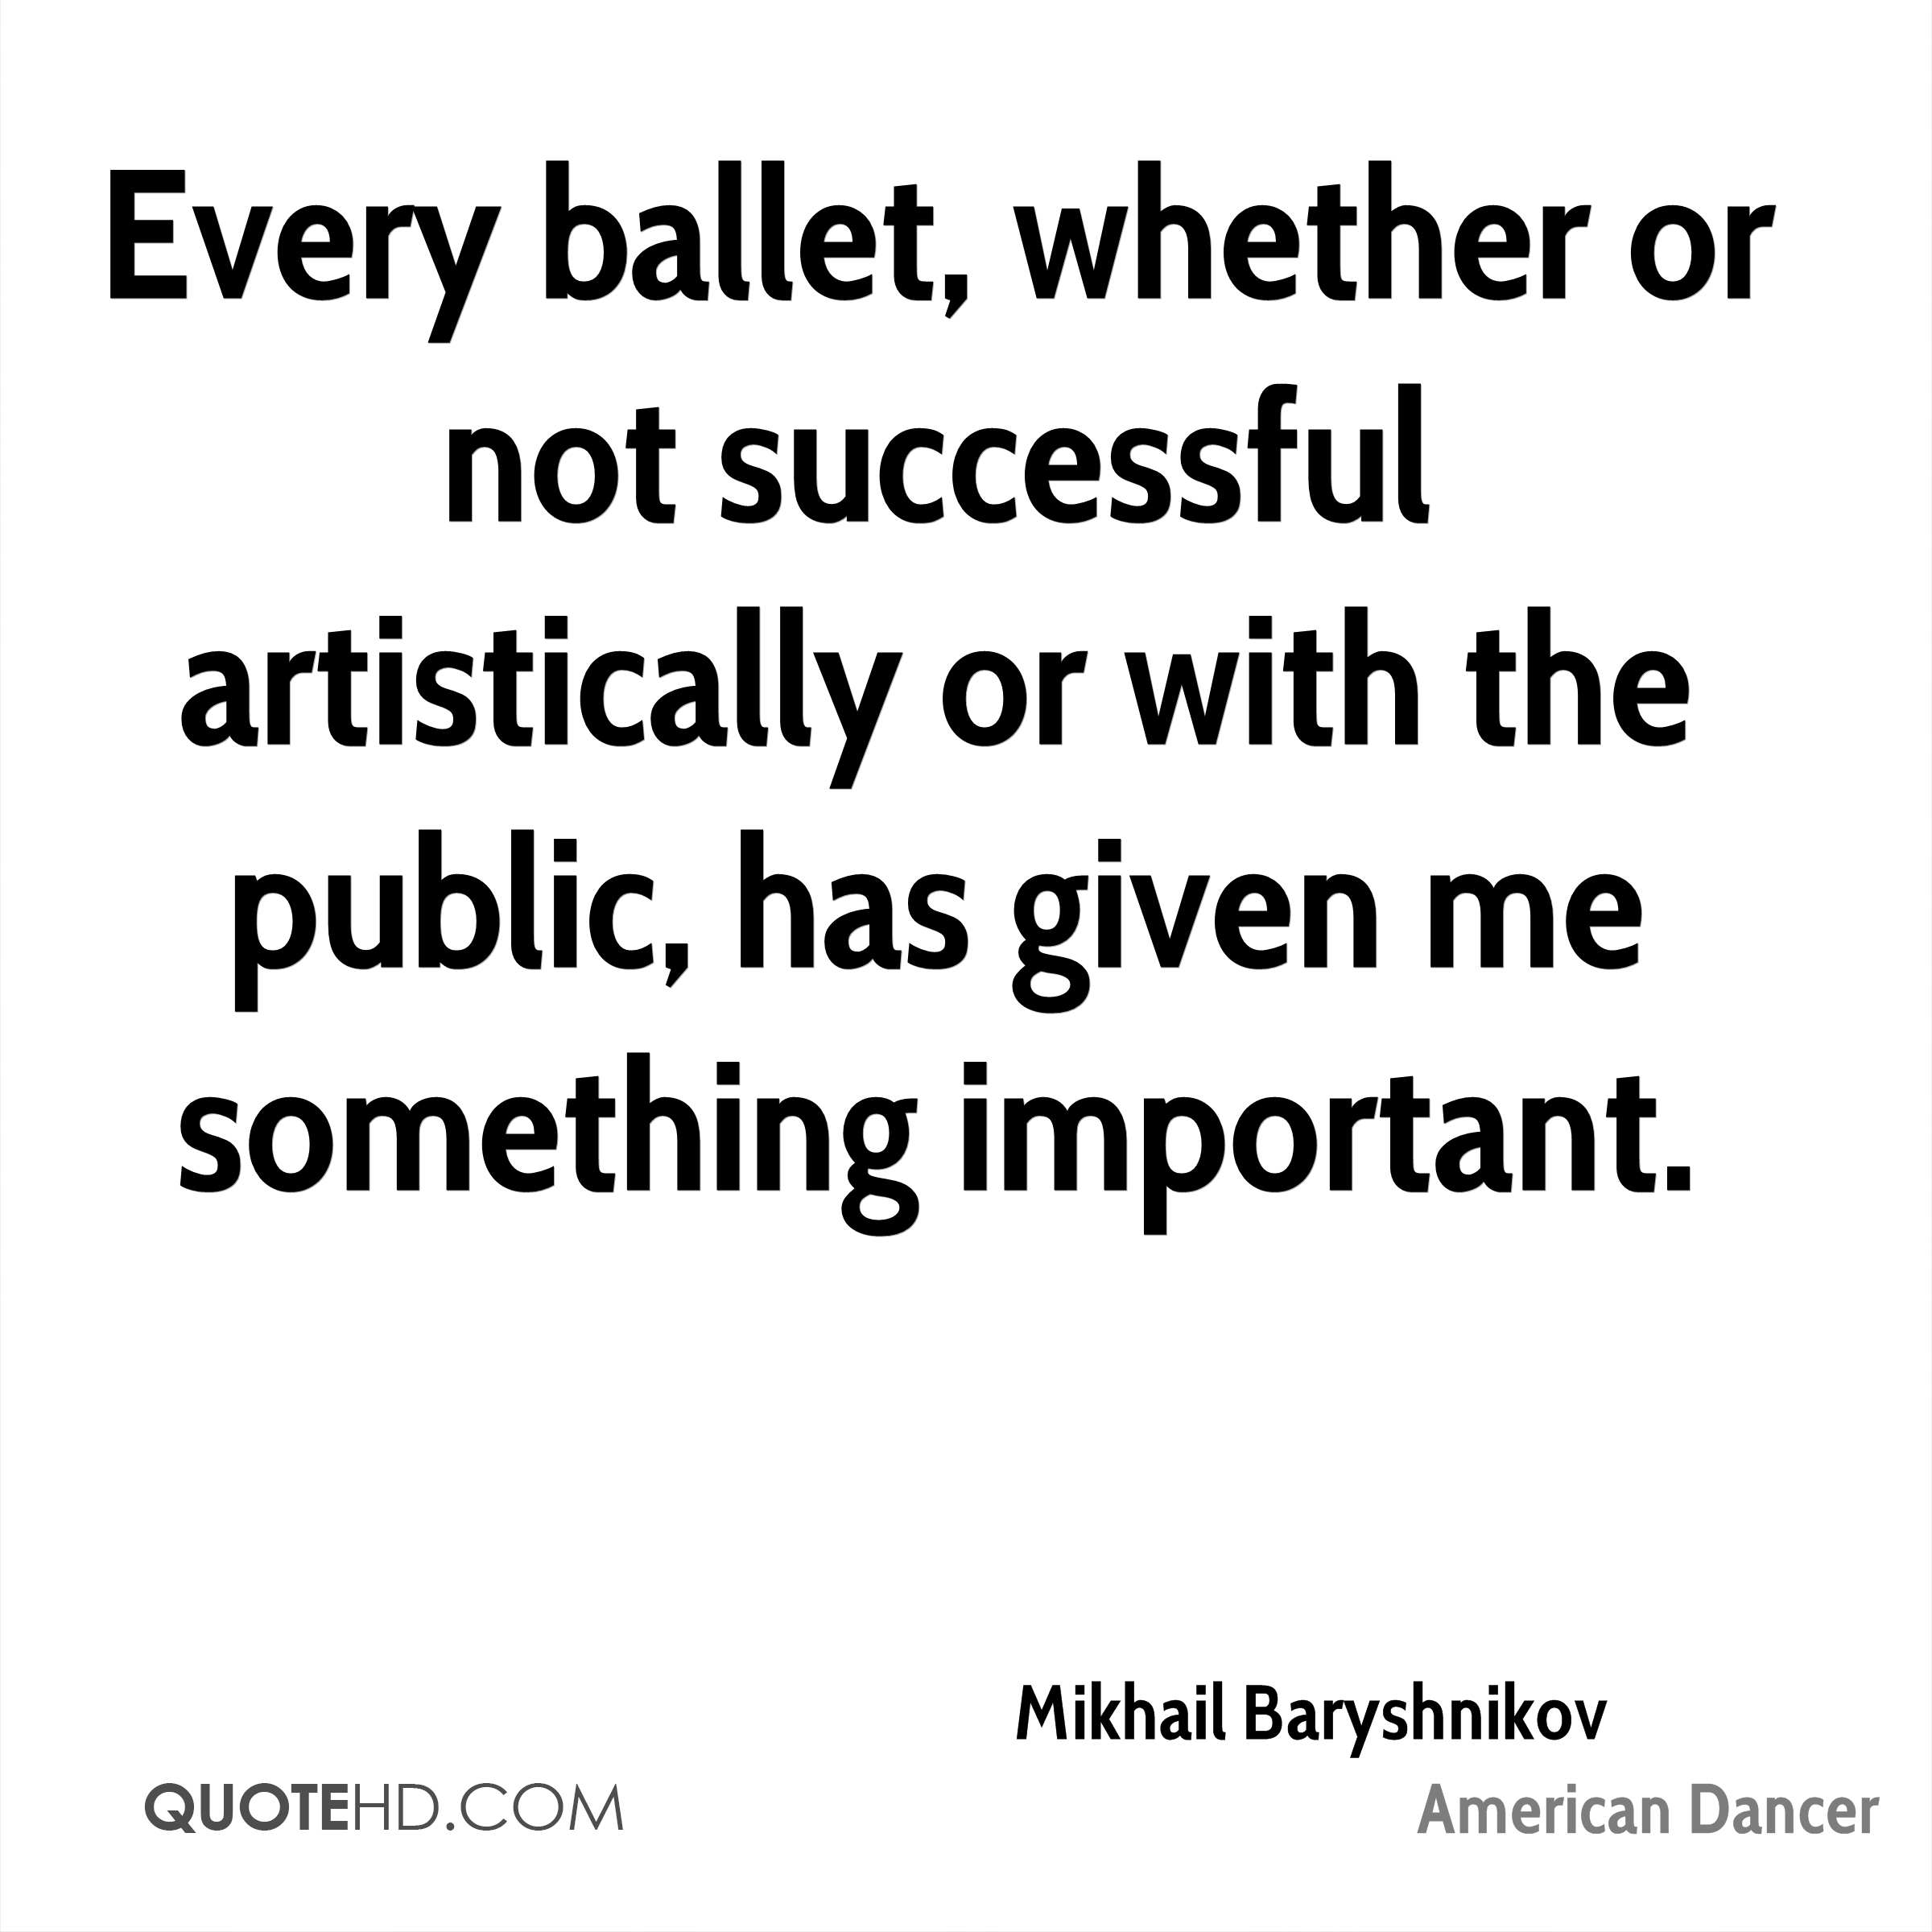 Every ballet, whether or not successful artistically or with the public, has given me something important.